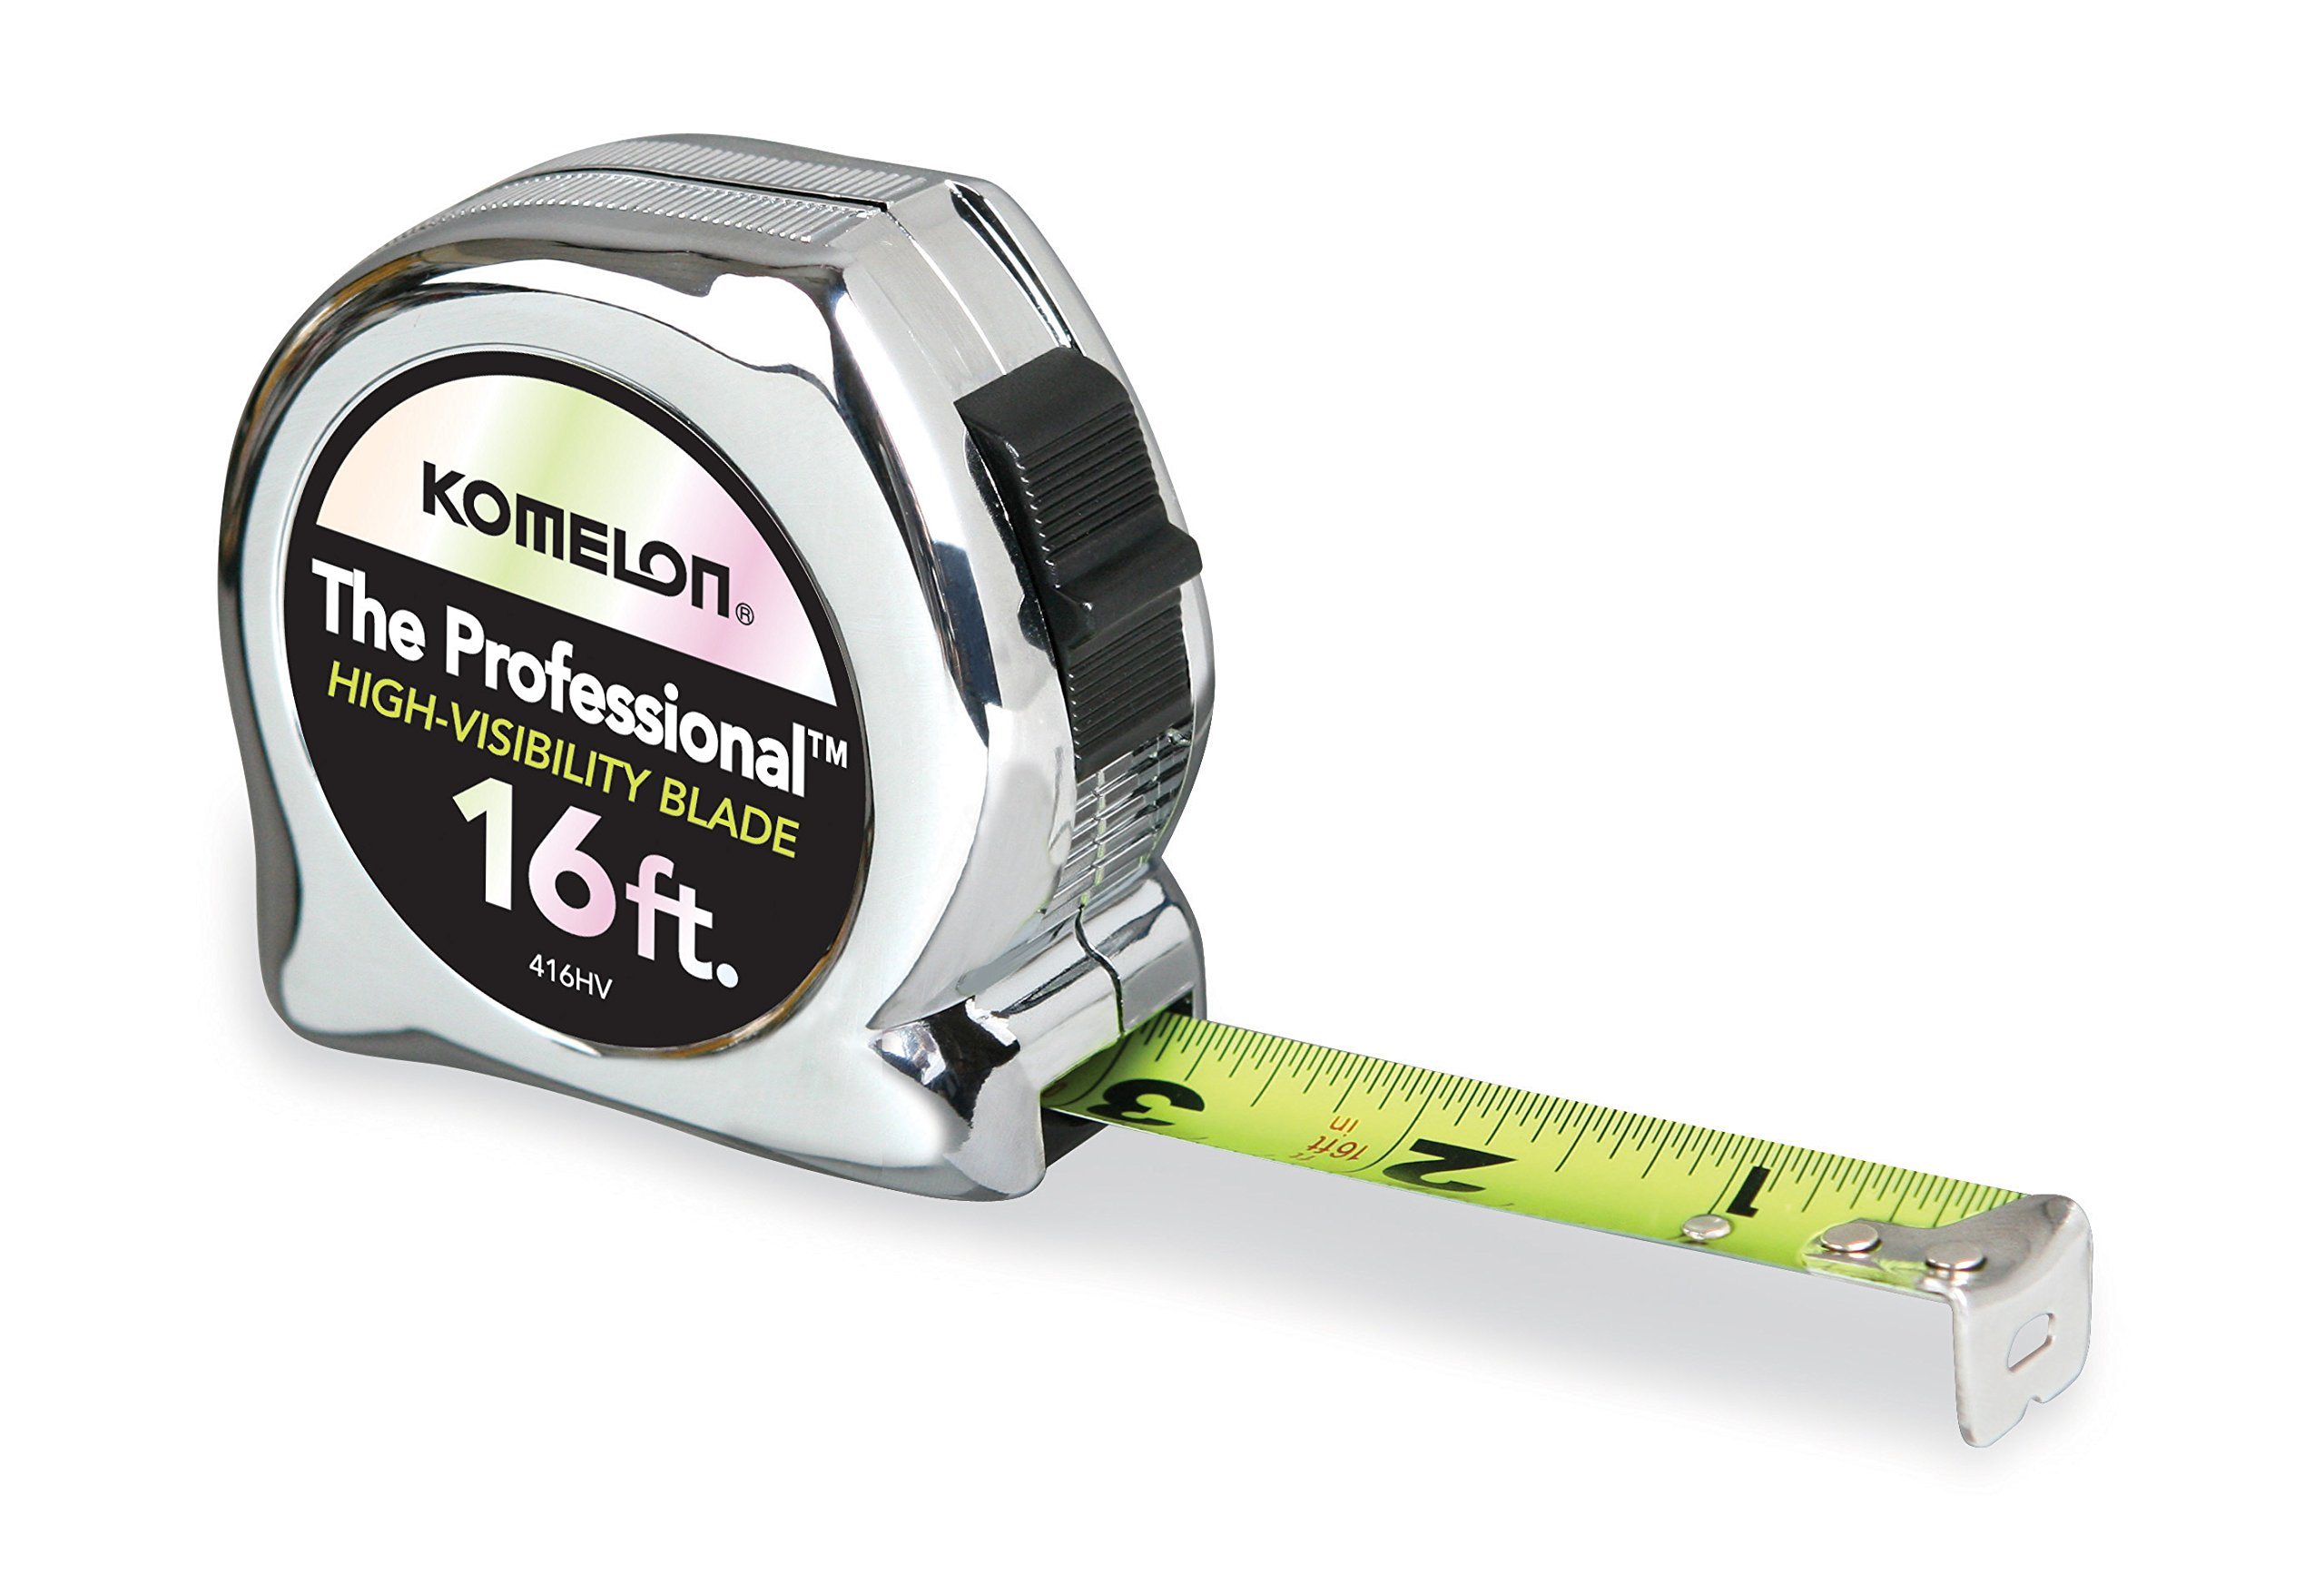 Komelon 416HV High-Visibility Professional Tape Measure, 16-Feet by 3/4-Inch, Chrome